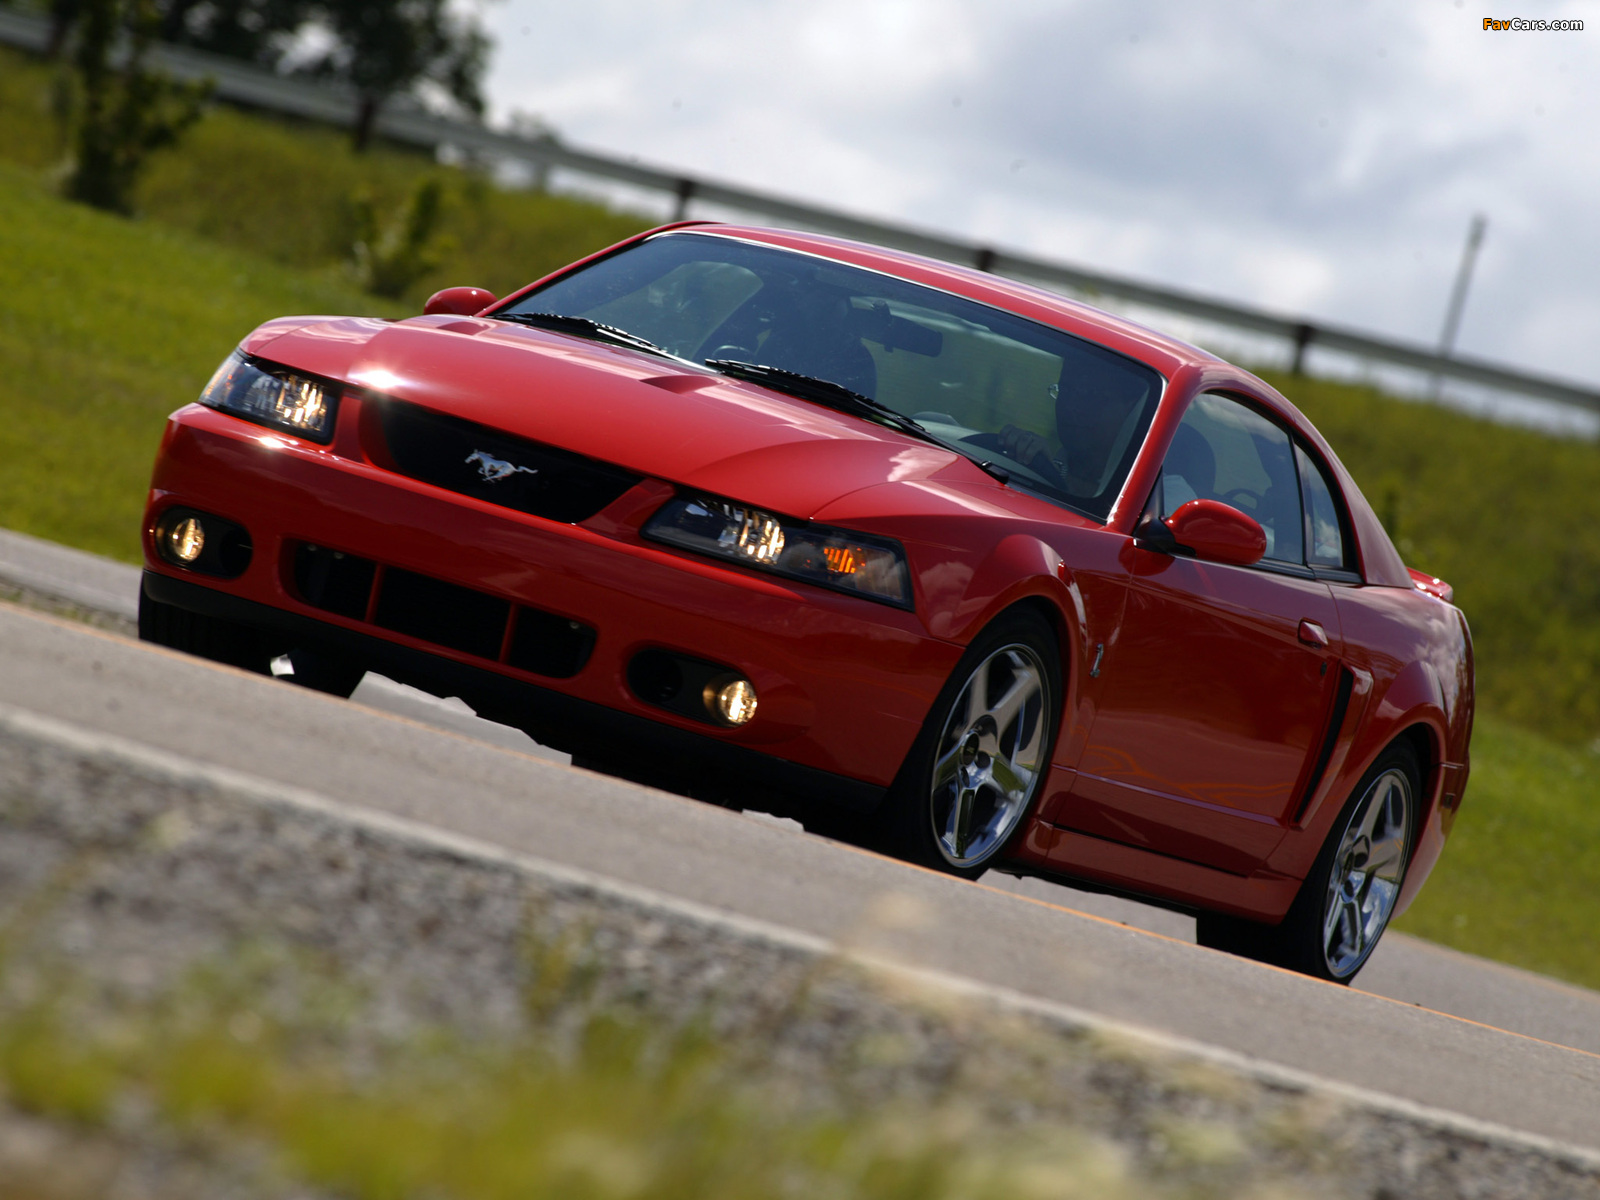 Mustang Svt Cobra Coupe 2004 05 Wallpapers 1600x1200